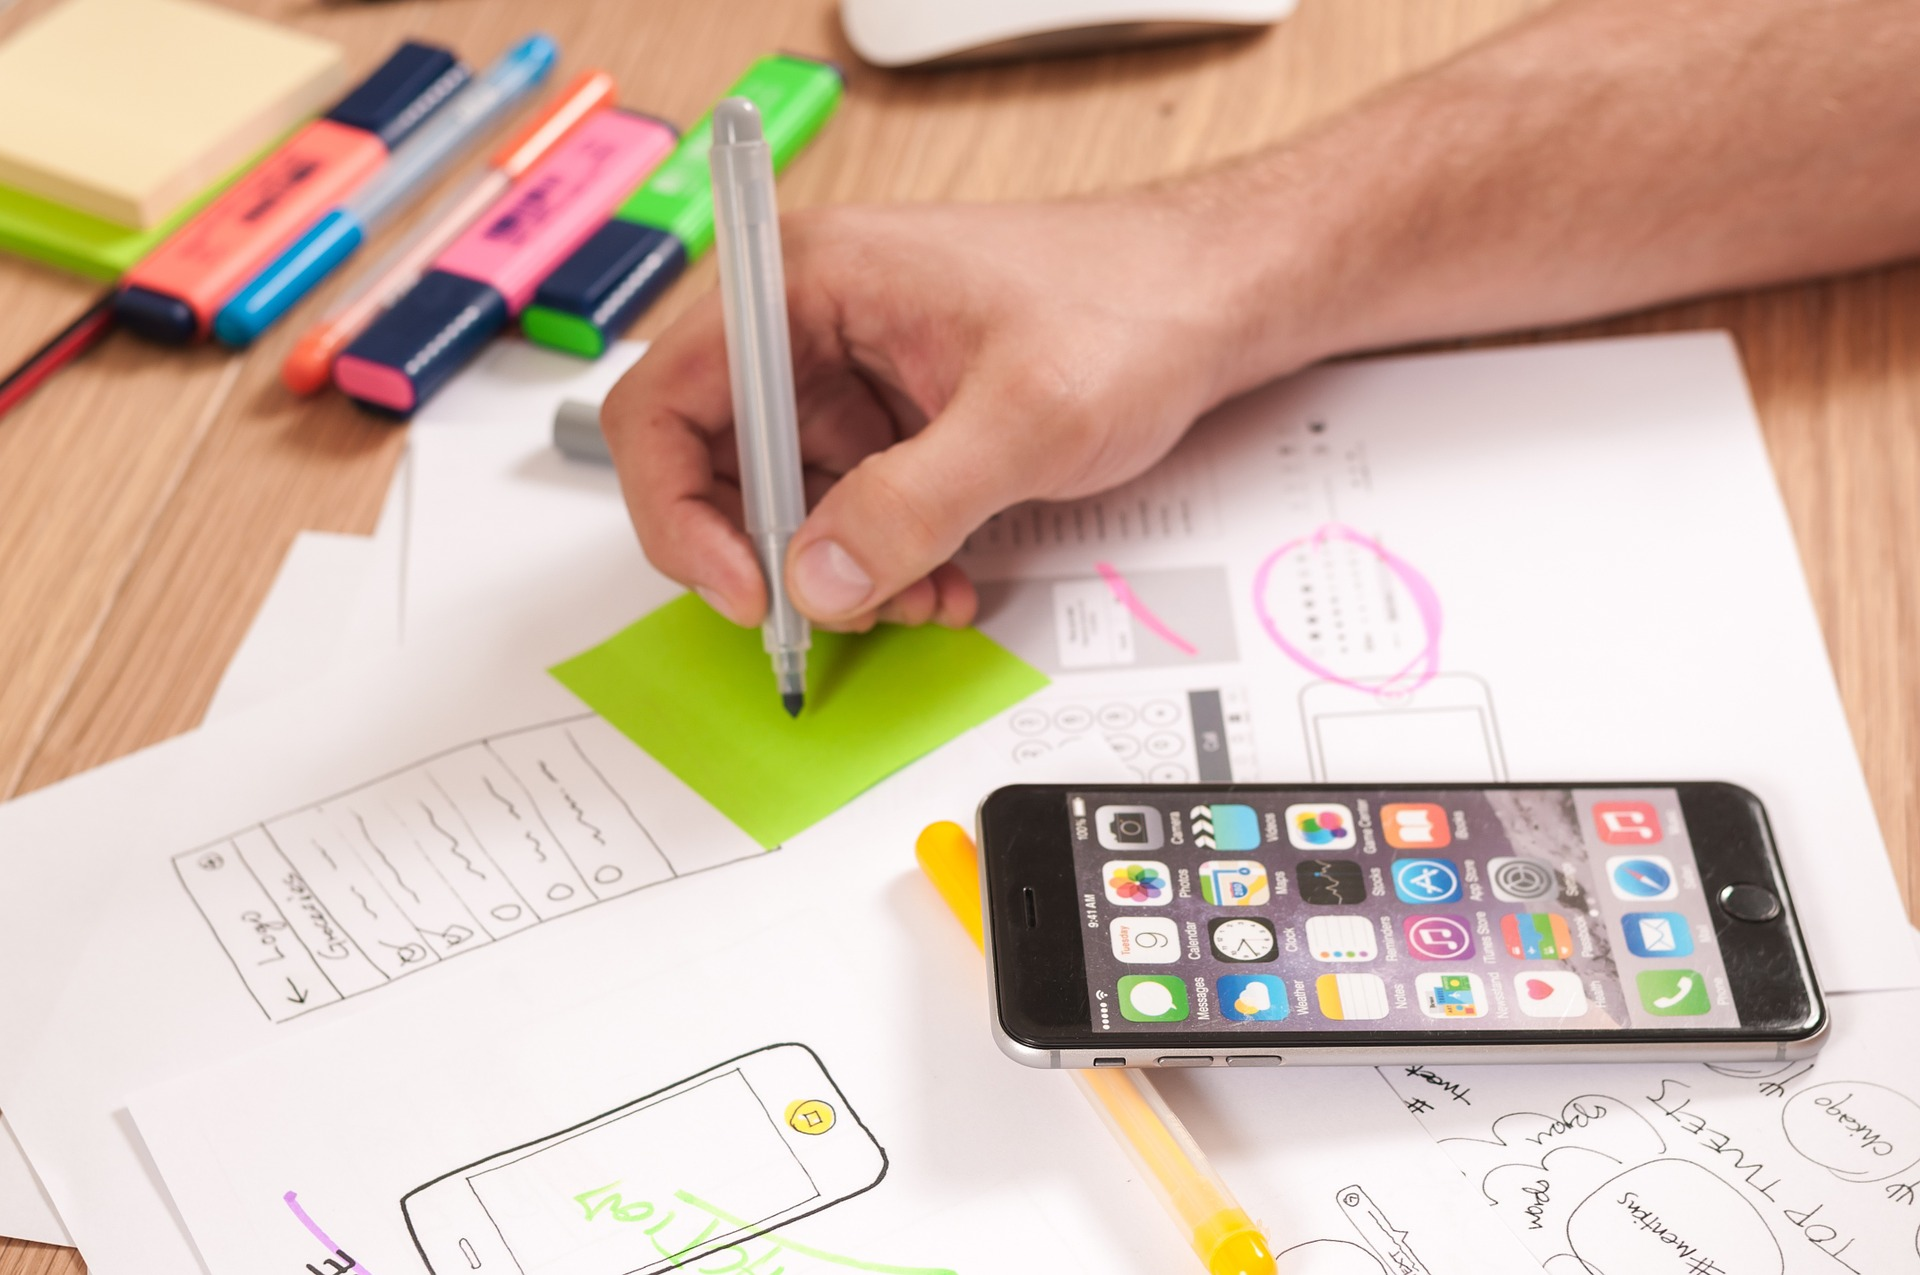 Mobile App Development in Boise